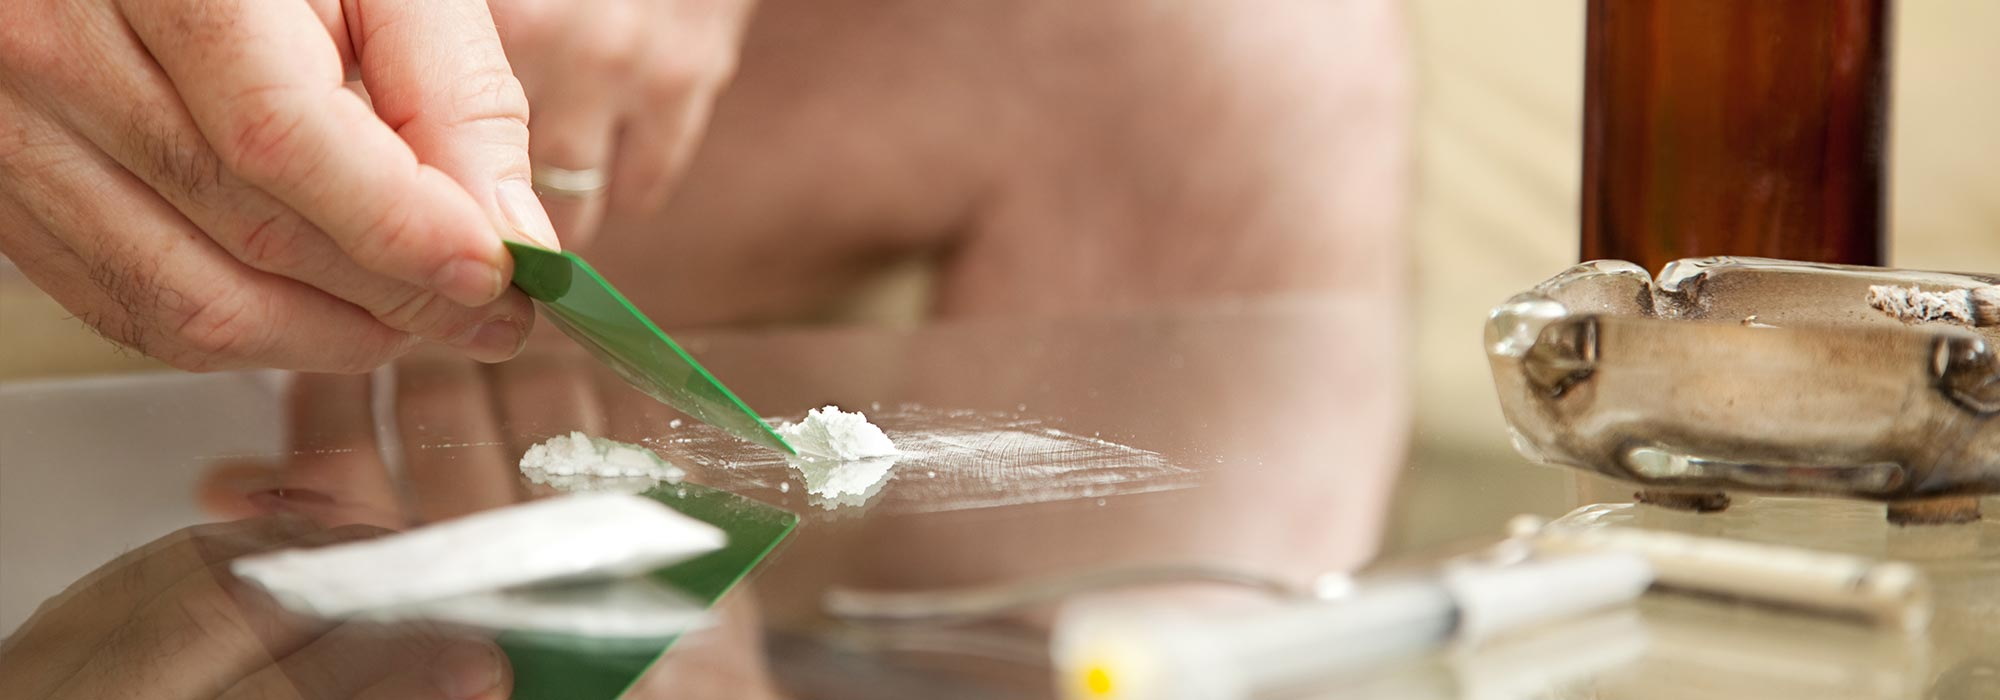 over 40's taking more illicit drugs